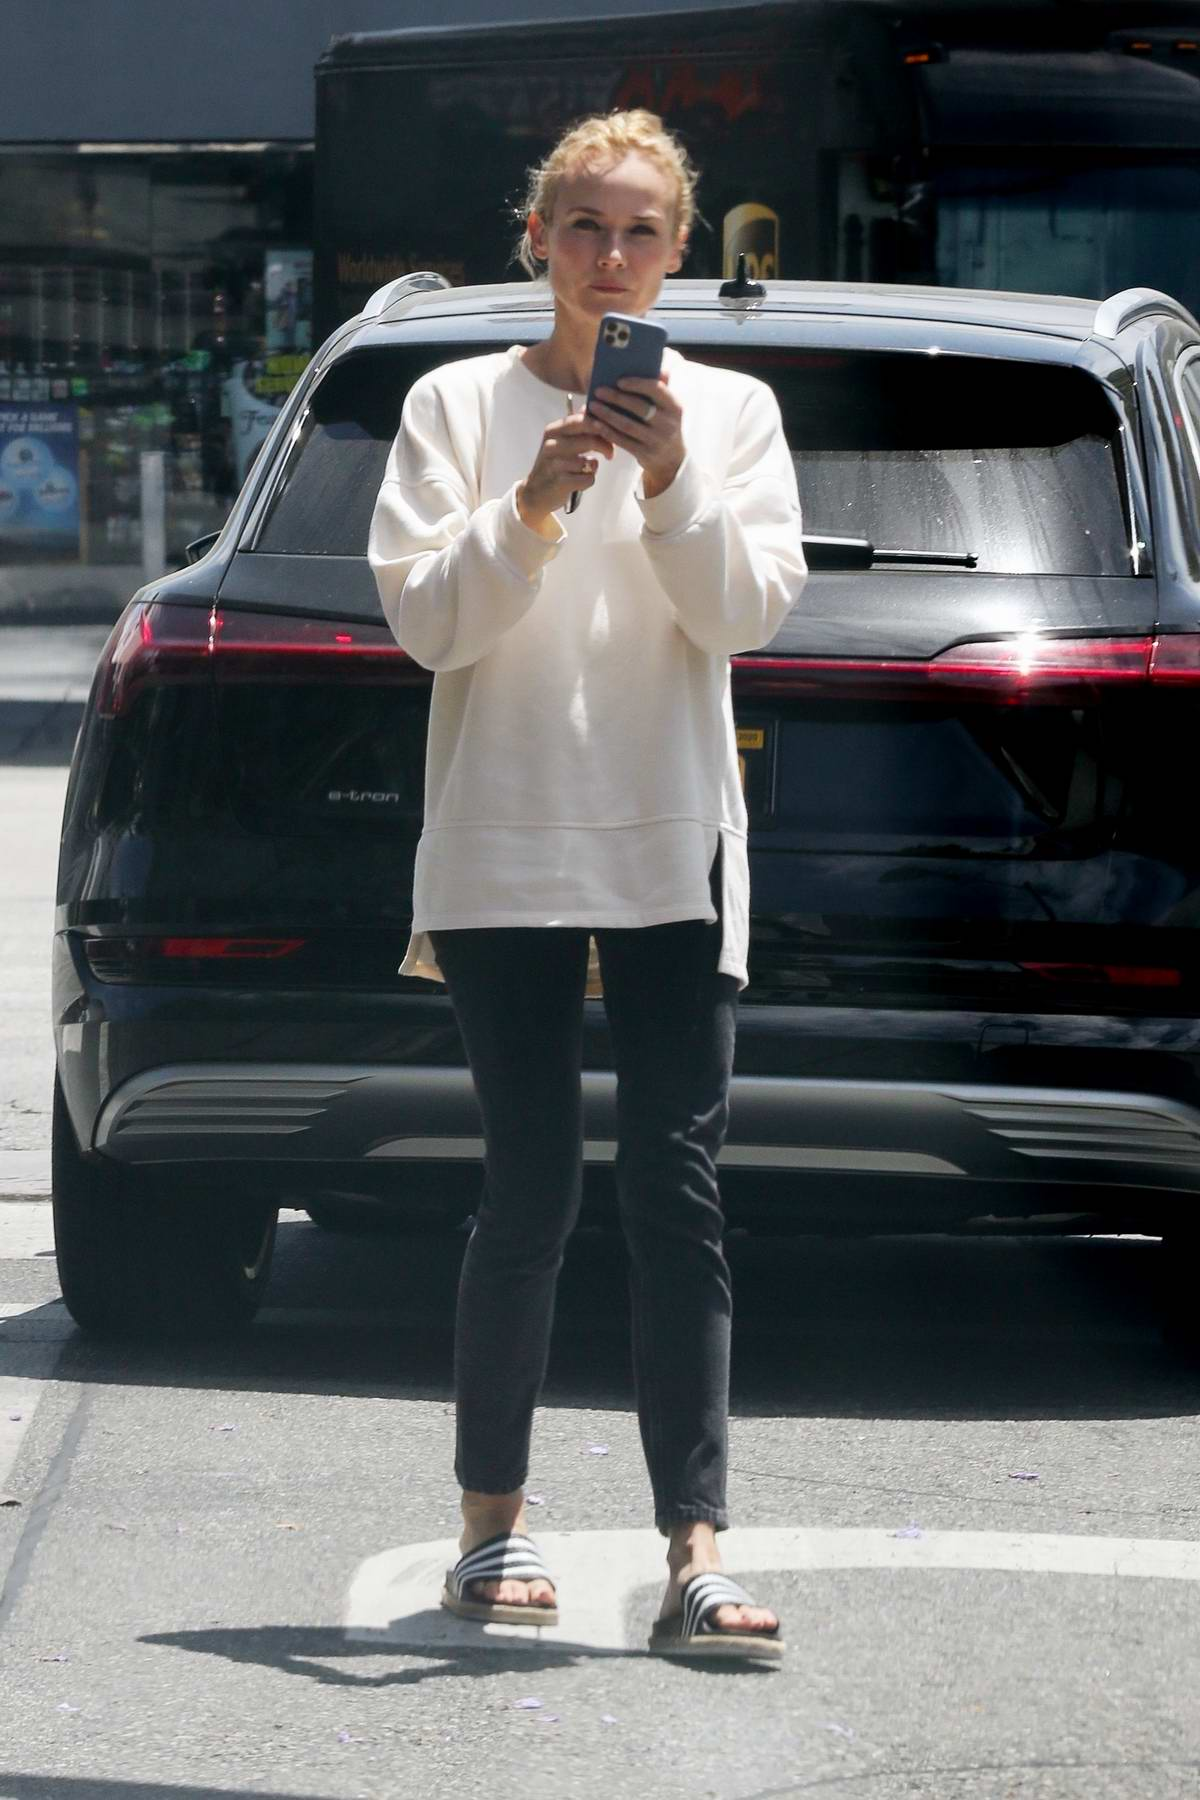 Diane Kruger looked busy on her phone while out shopping in Los Angeles